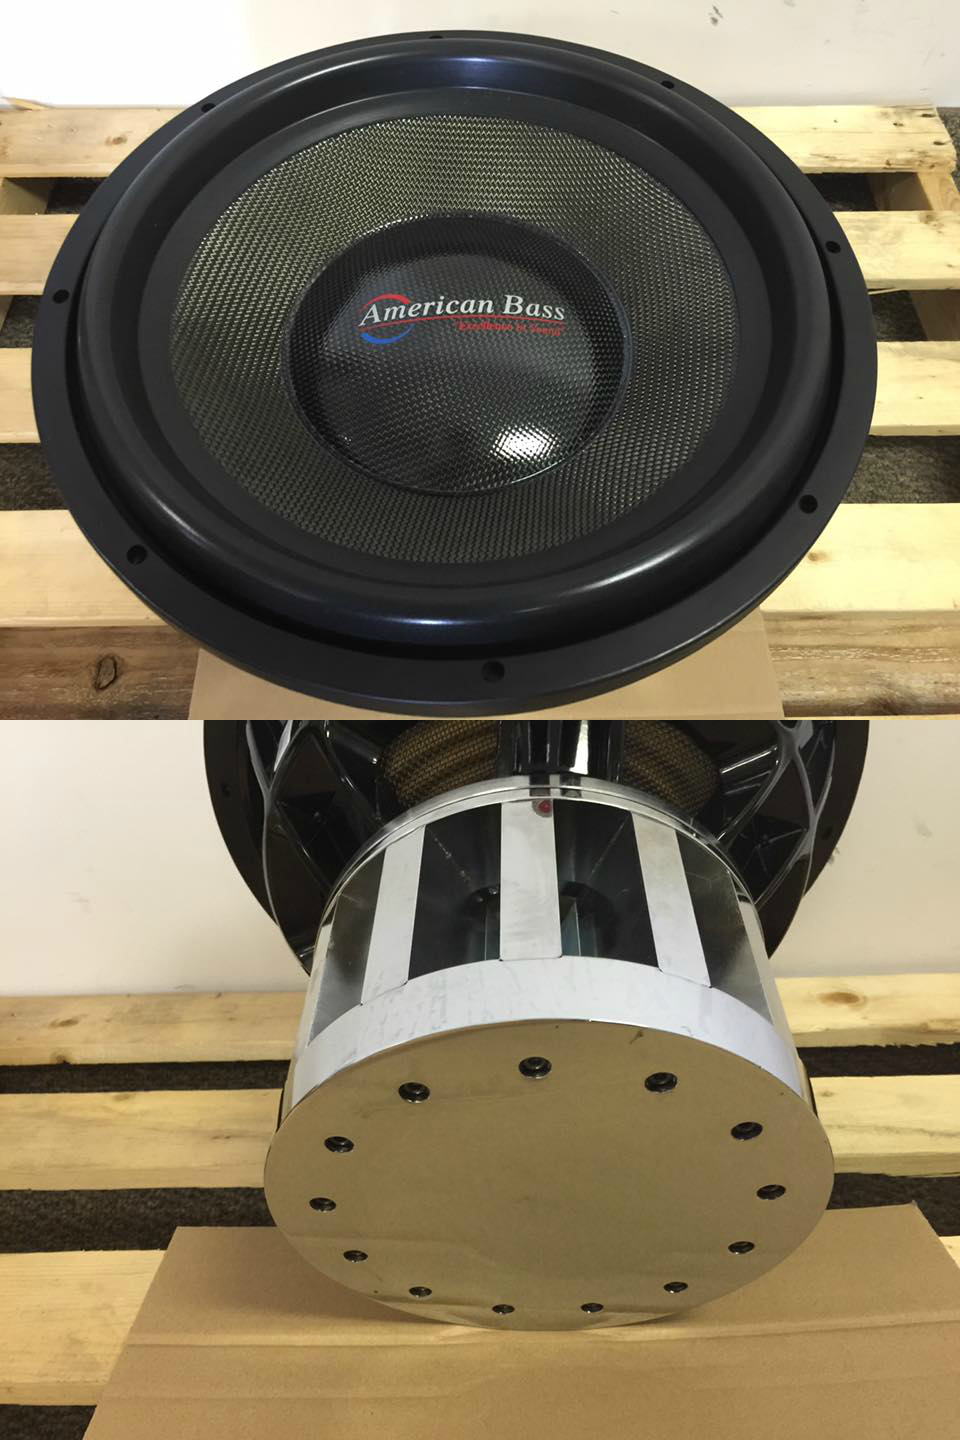 american bass neo subwoofer bass flat lowes [ 960 x 1440 Pixel ]